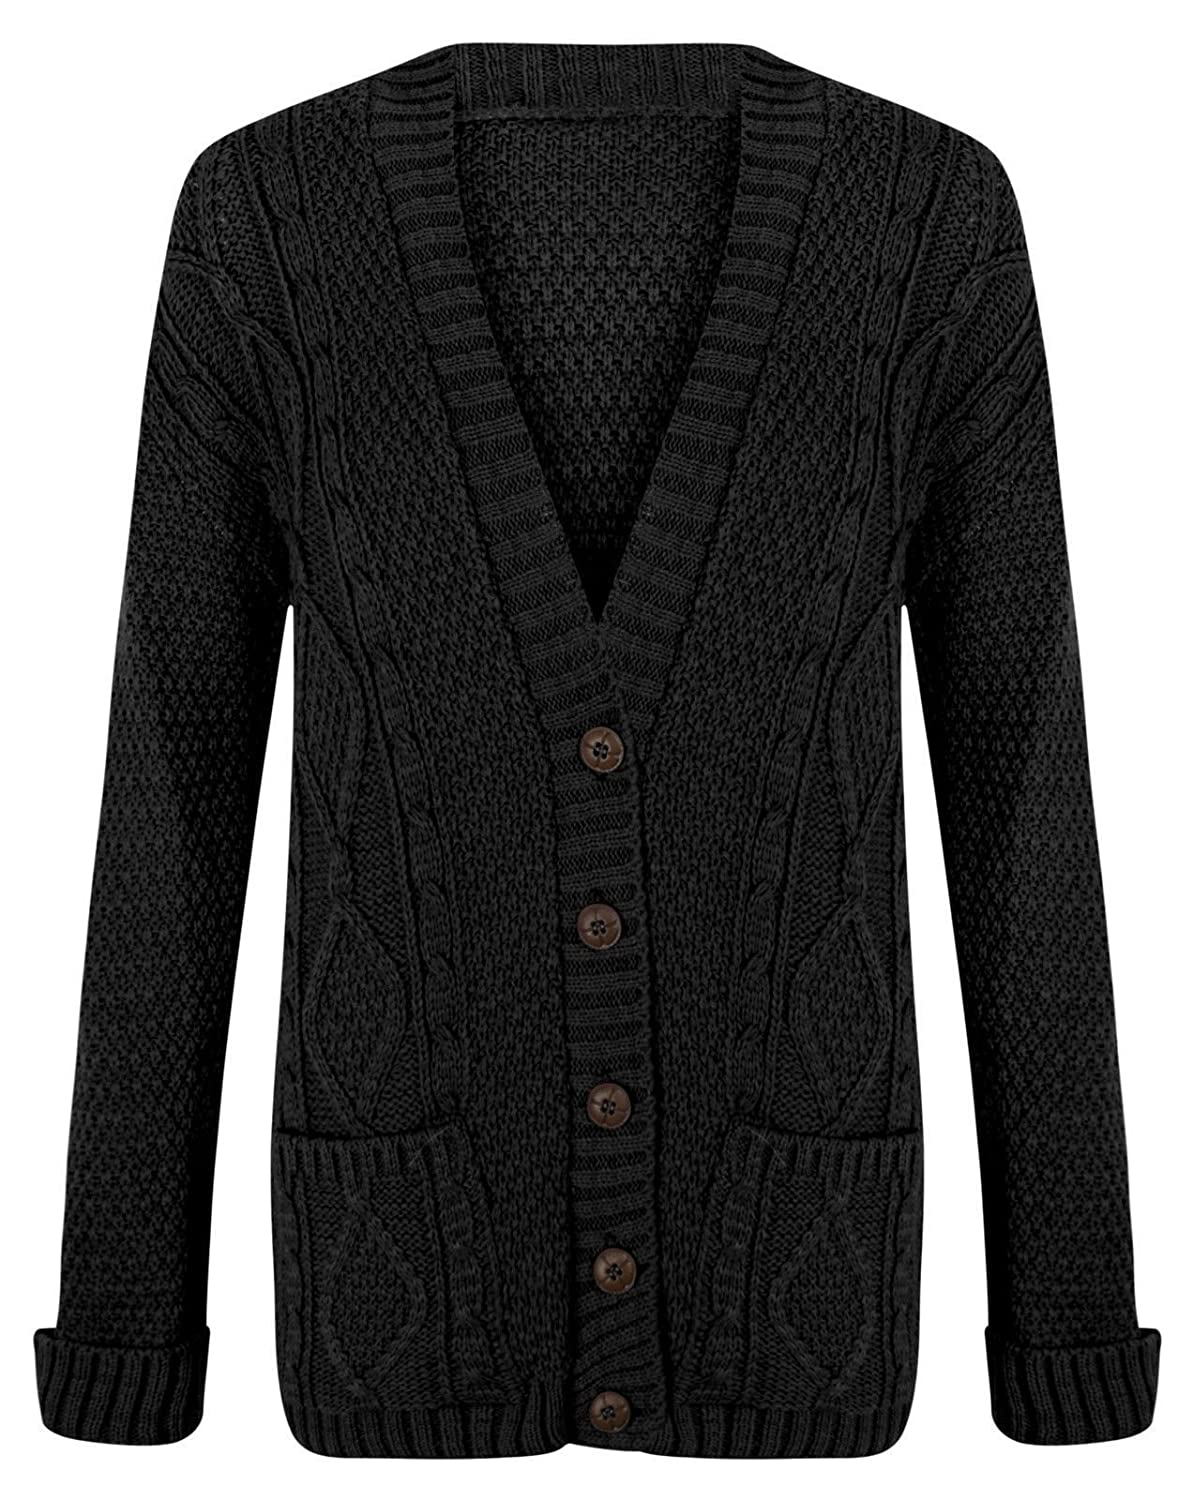 JAVOX Fashion\'s Womens Chunky Knitted Grandad Cardigan Ladies Baggy Boyfriend Open Pocket Jumper